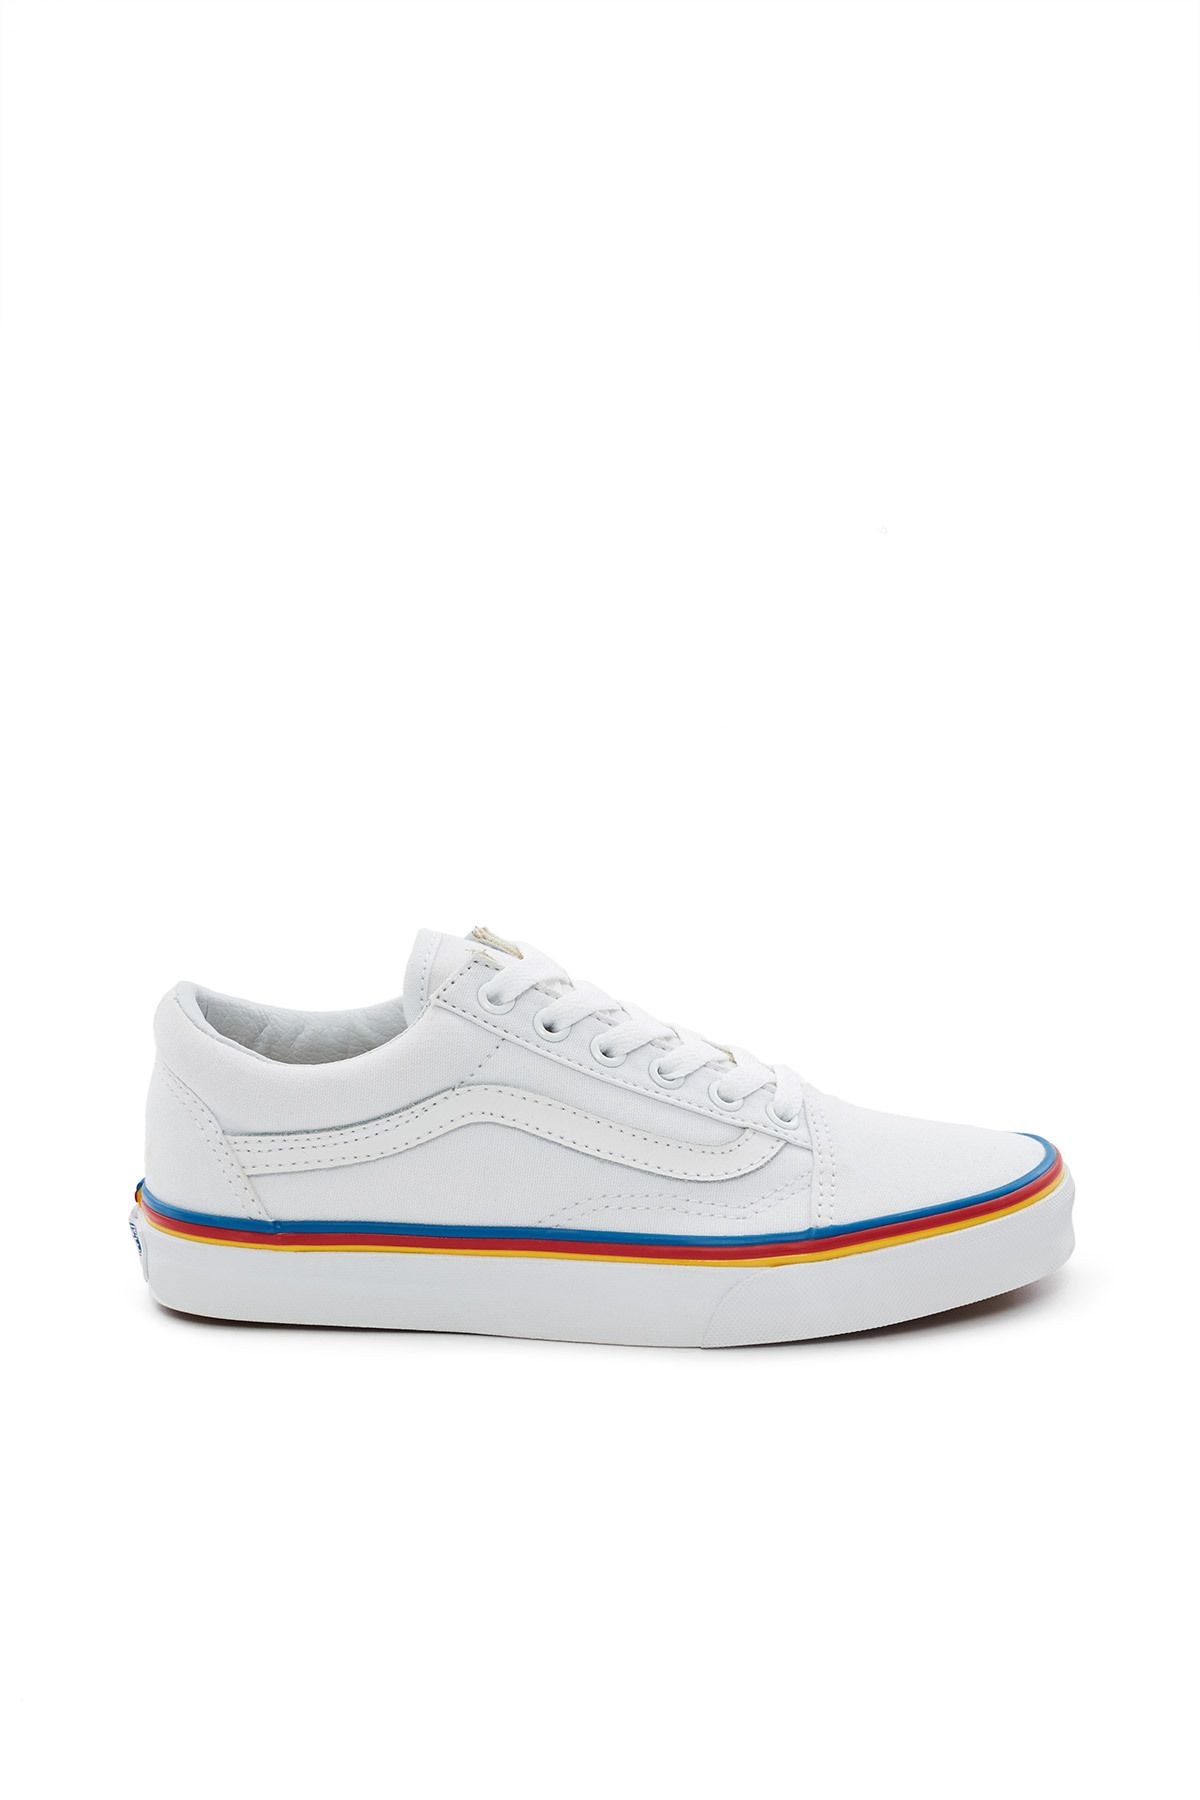 f15c2e6083 Vans, Old Skool Sneaker Vans' iconic Old Skool sneakers are rendered in an  all-white canvas upper with tri-color blue, red, and yellow foxing stripes  that ...